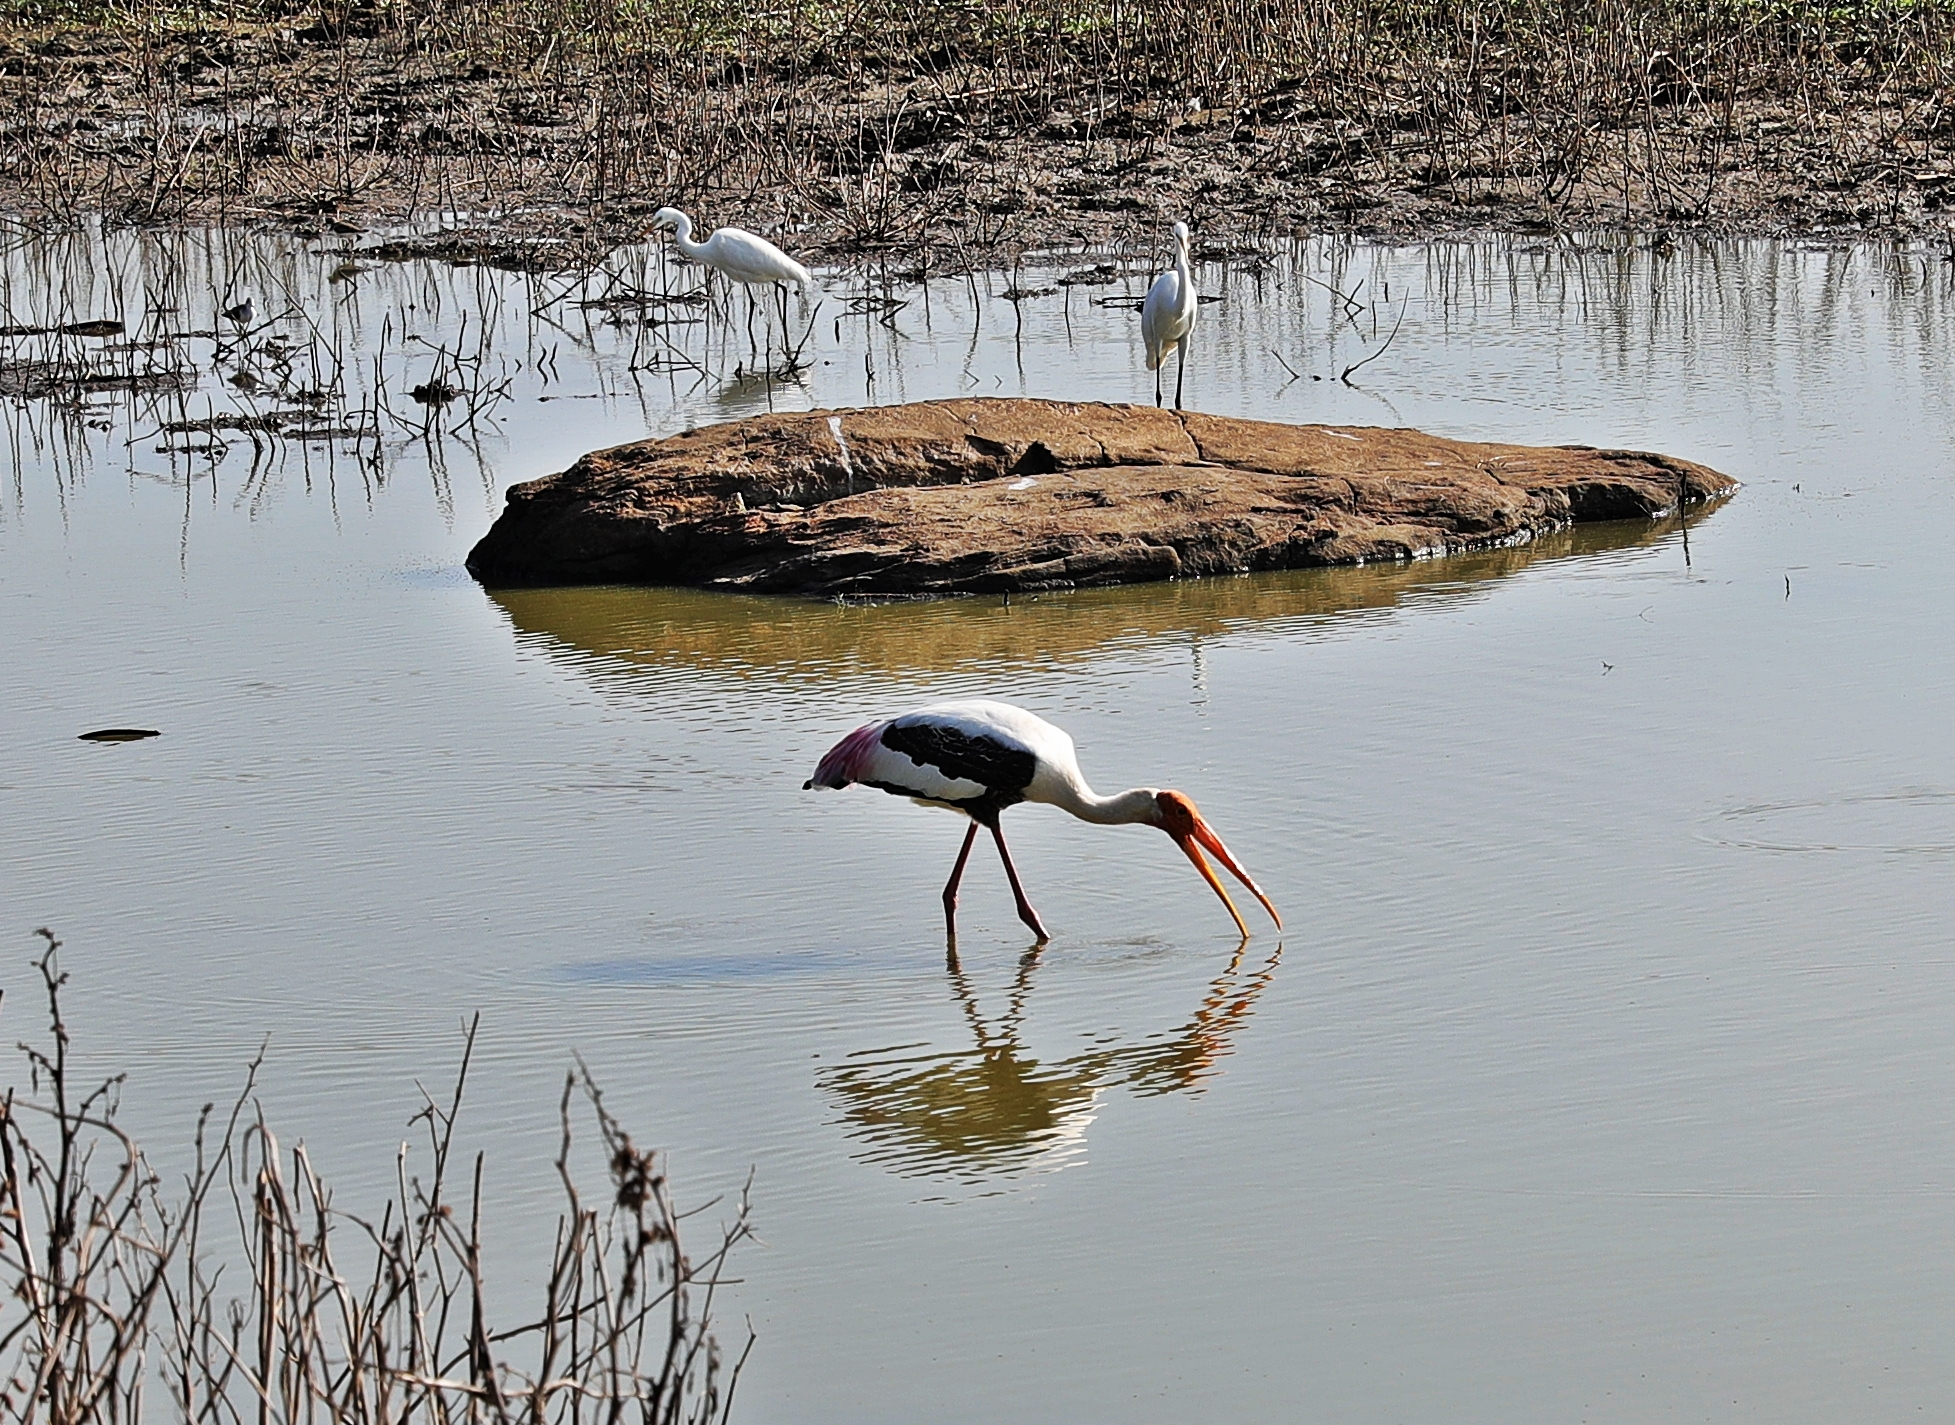 Painted Stork, Uda Walawe National Park